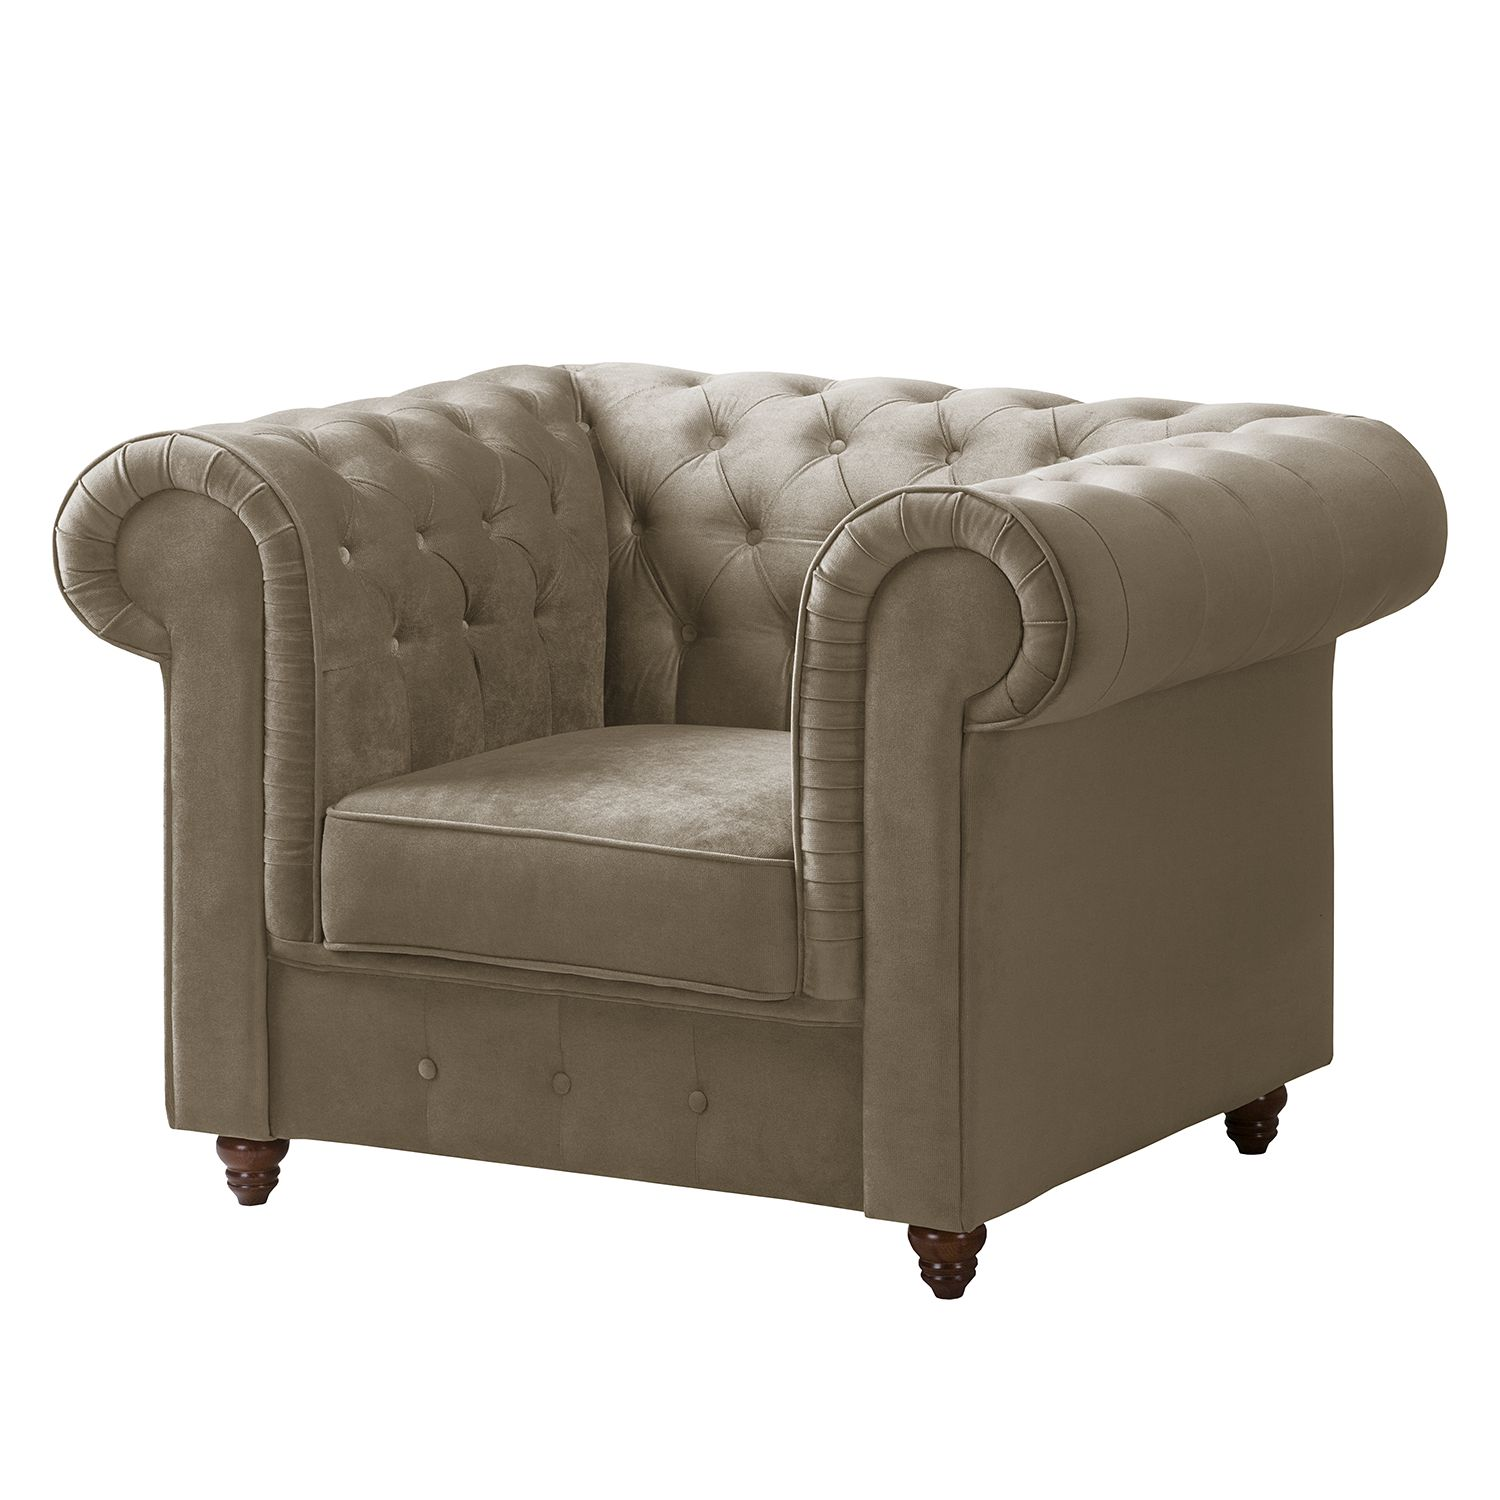 home24 Chesterfield Sessel Pintano | Wohnzimmer > Sessel > Chesterfield Sessel | Braun | Maison Belfort